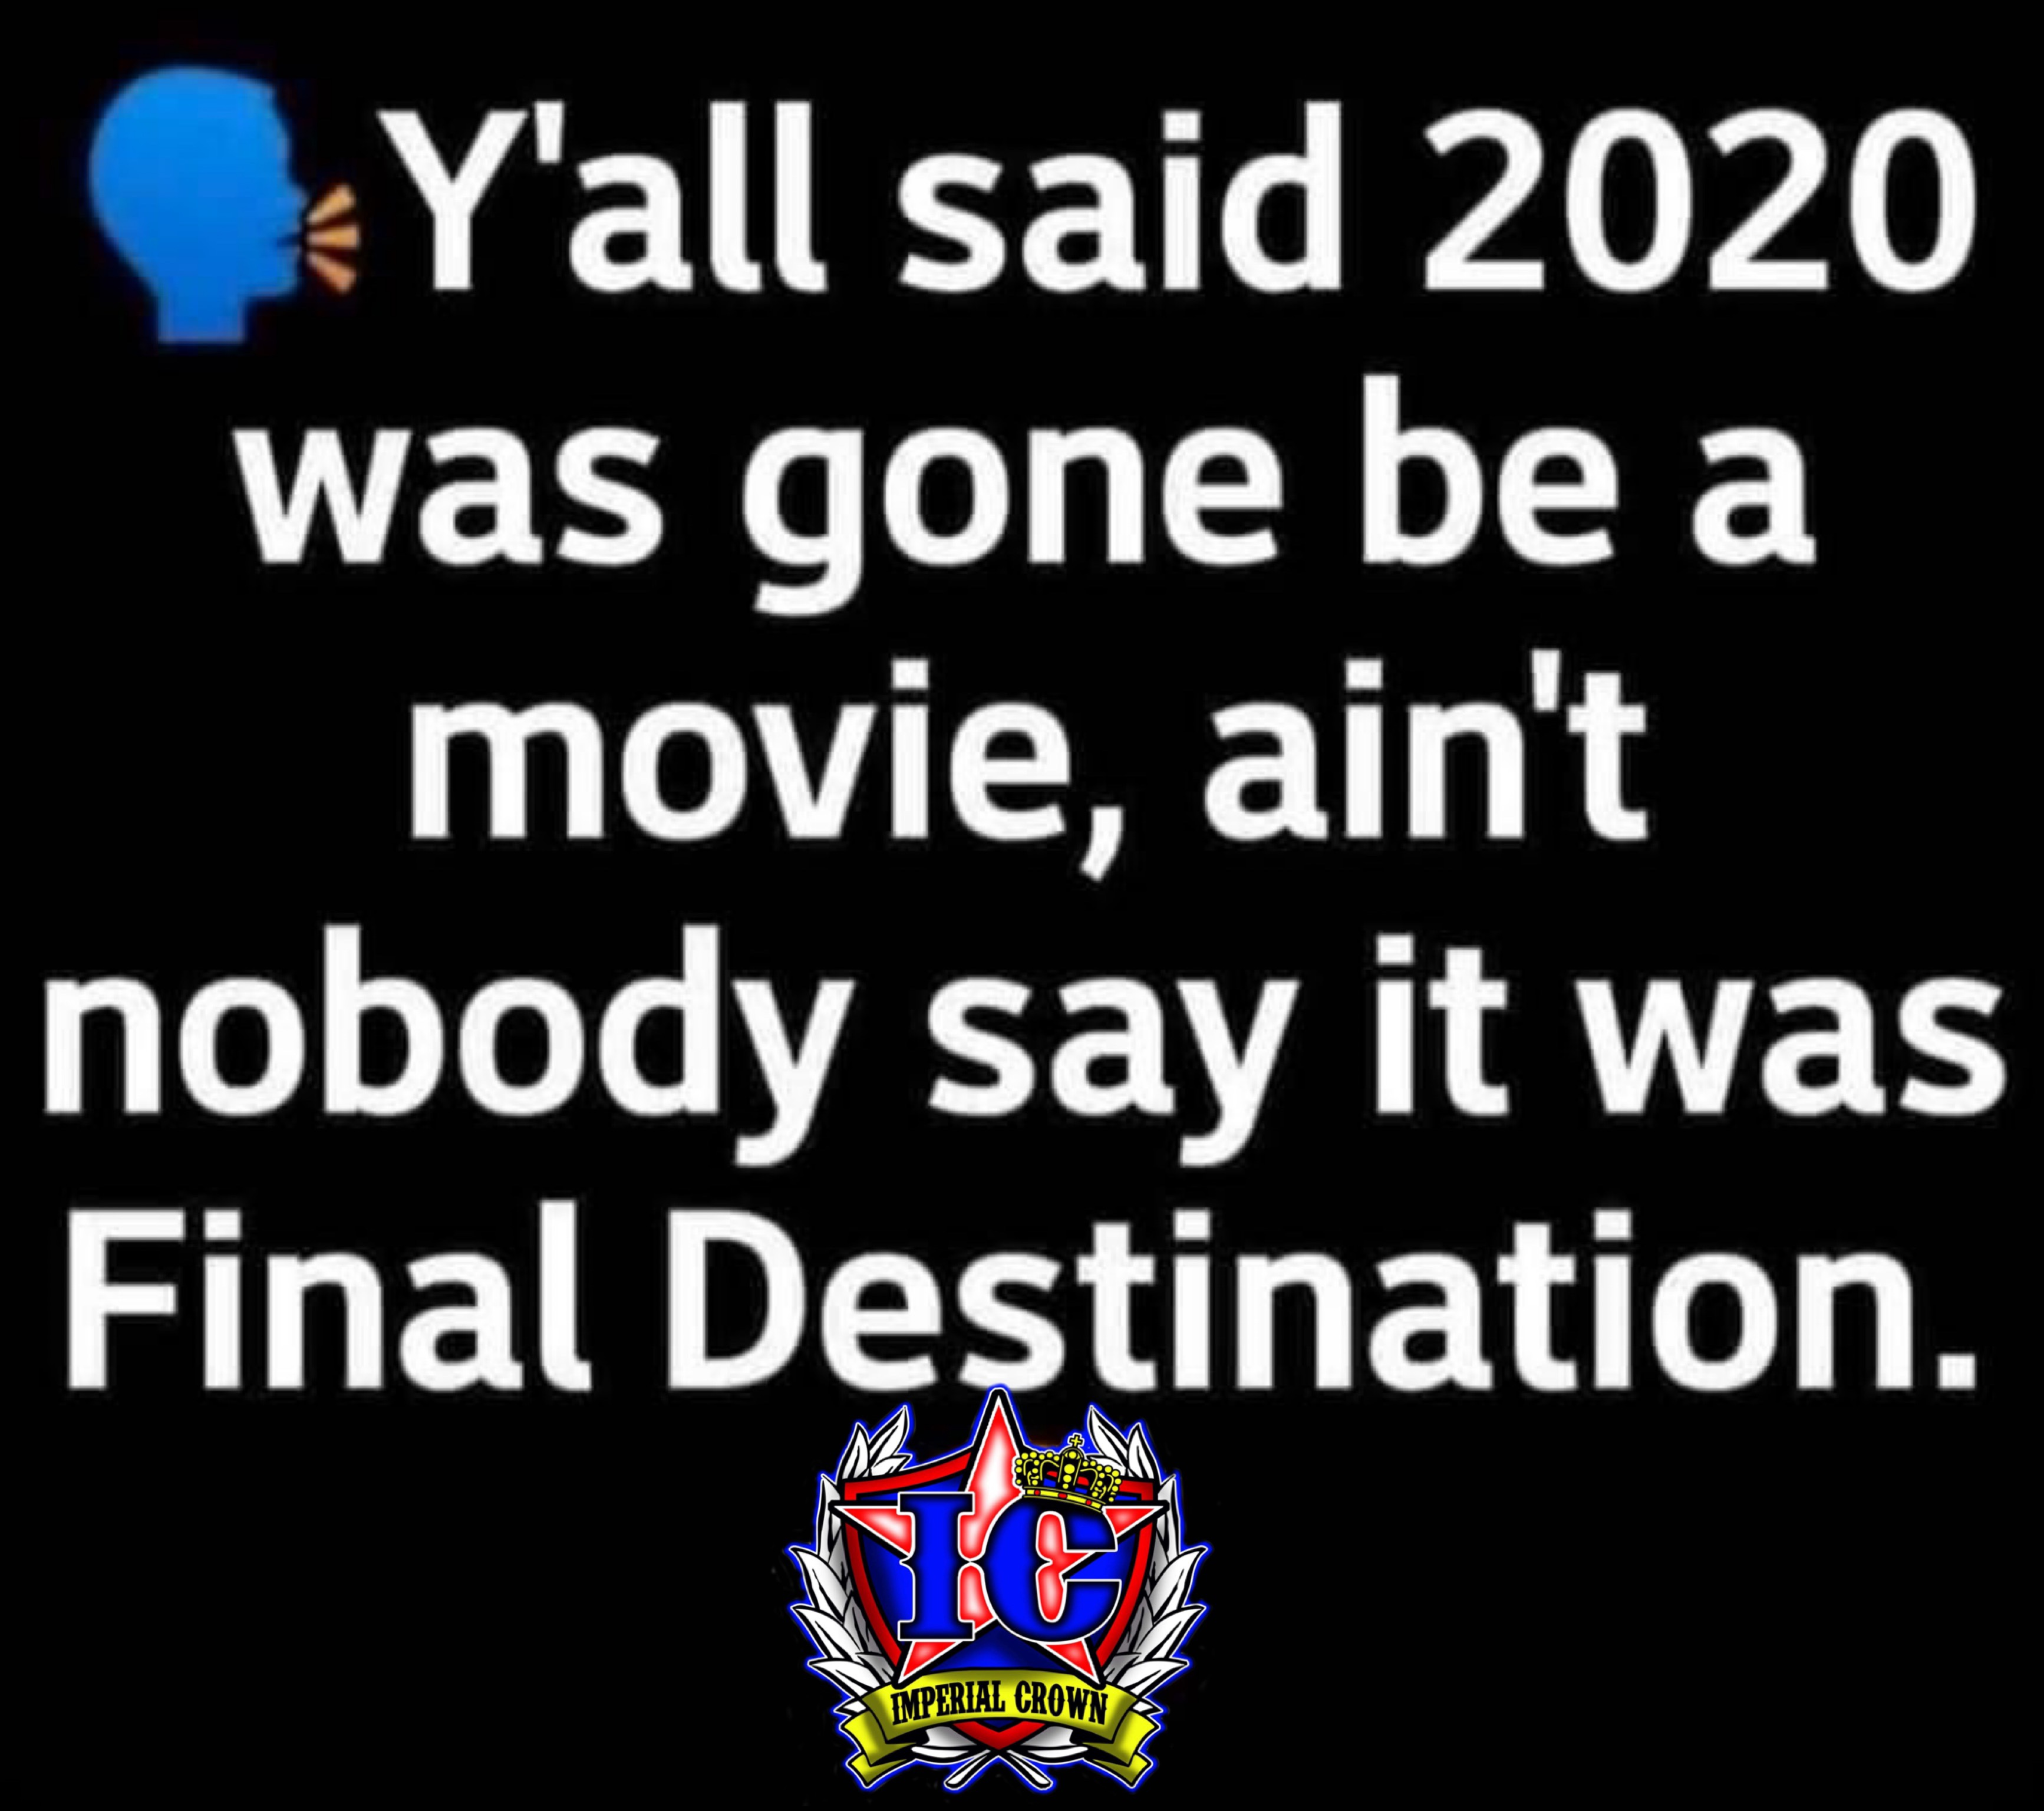 Y'all said 2020 was gone be a movie ain't nobody say it was final destination